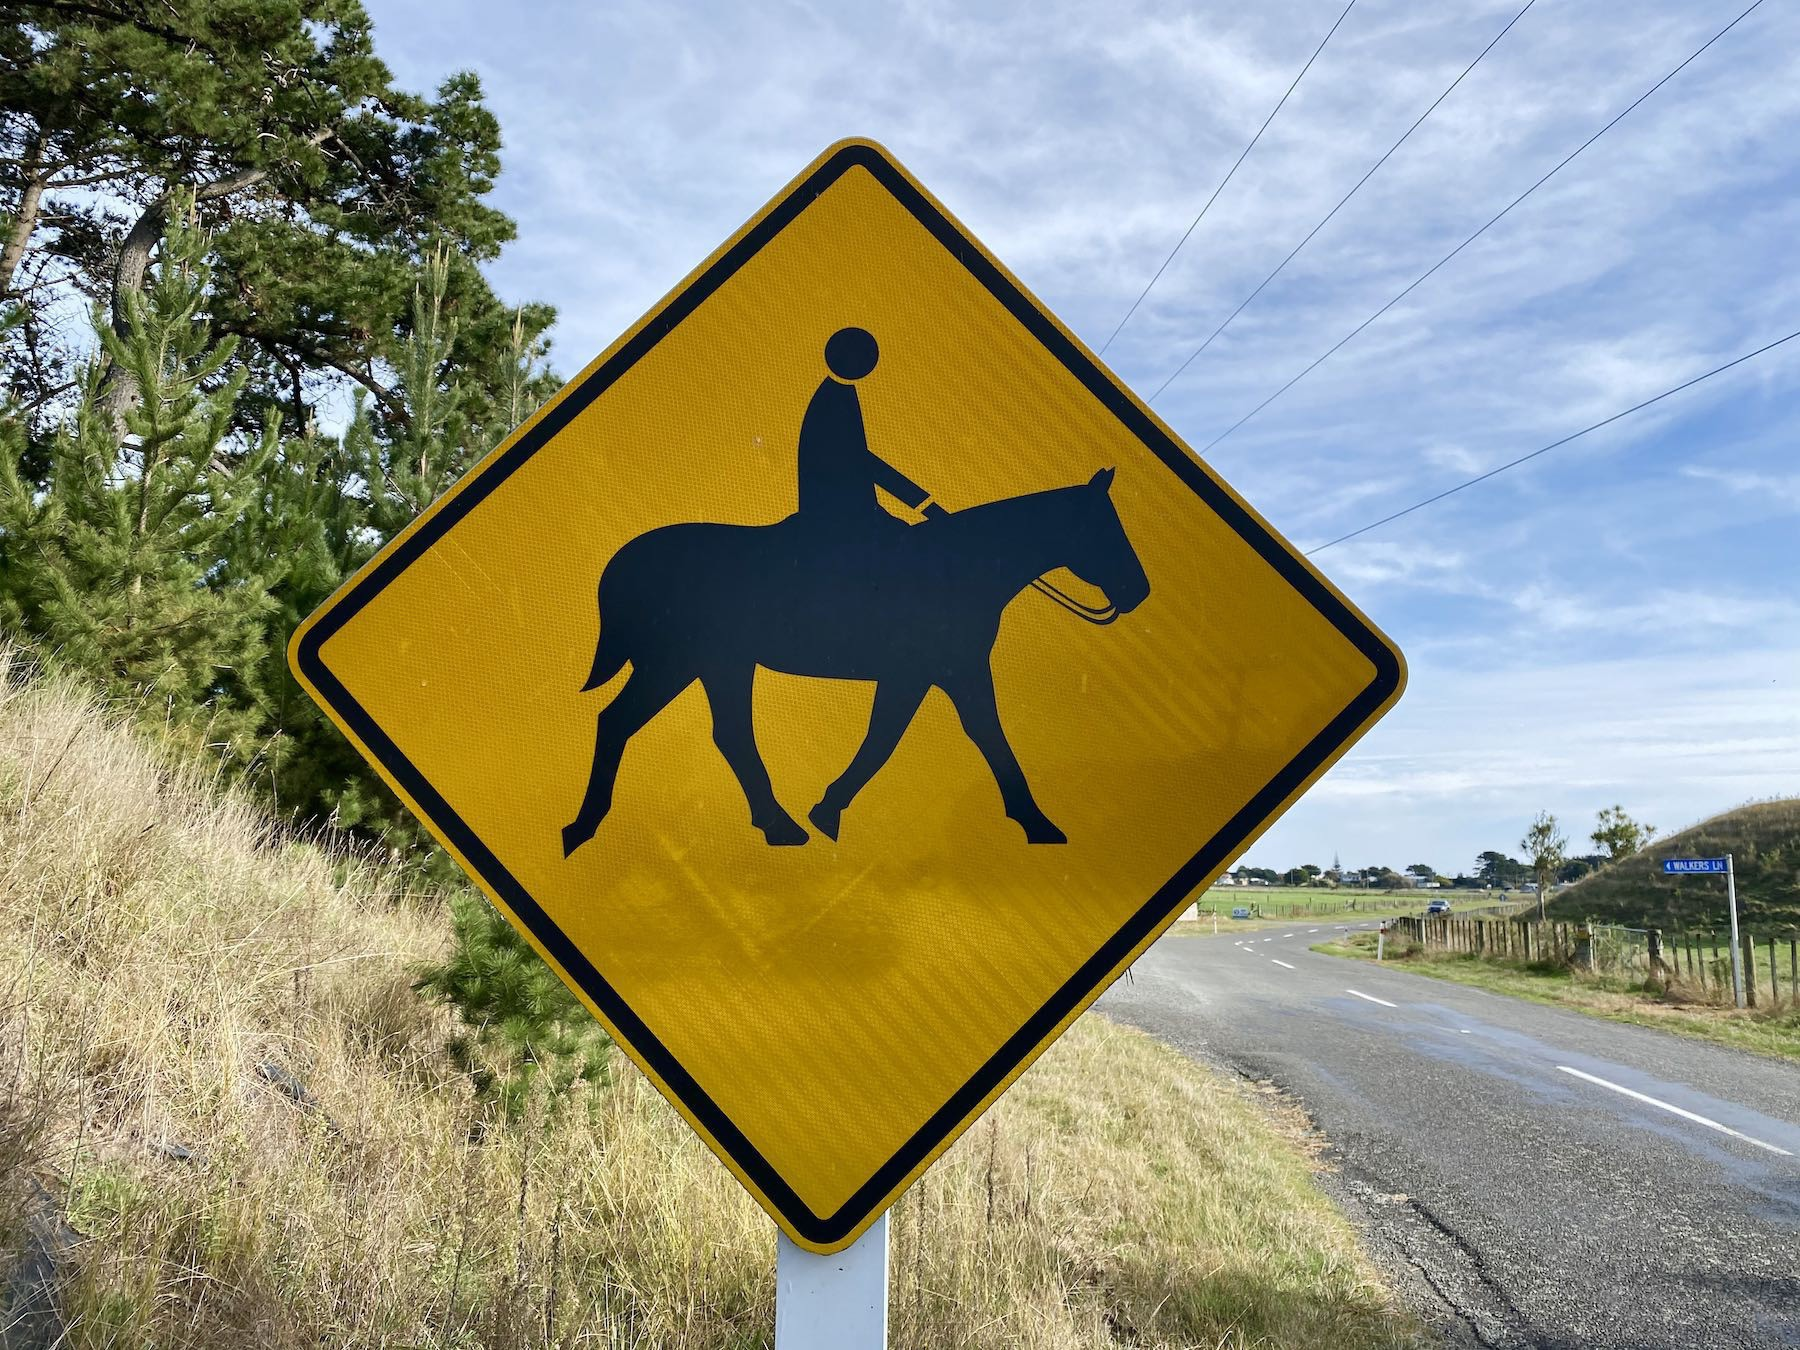 Traffic sign with yellow background warning of horses and riders ahead.